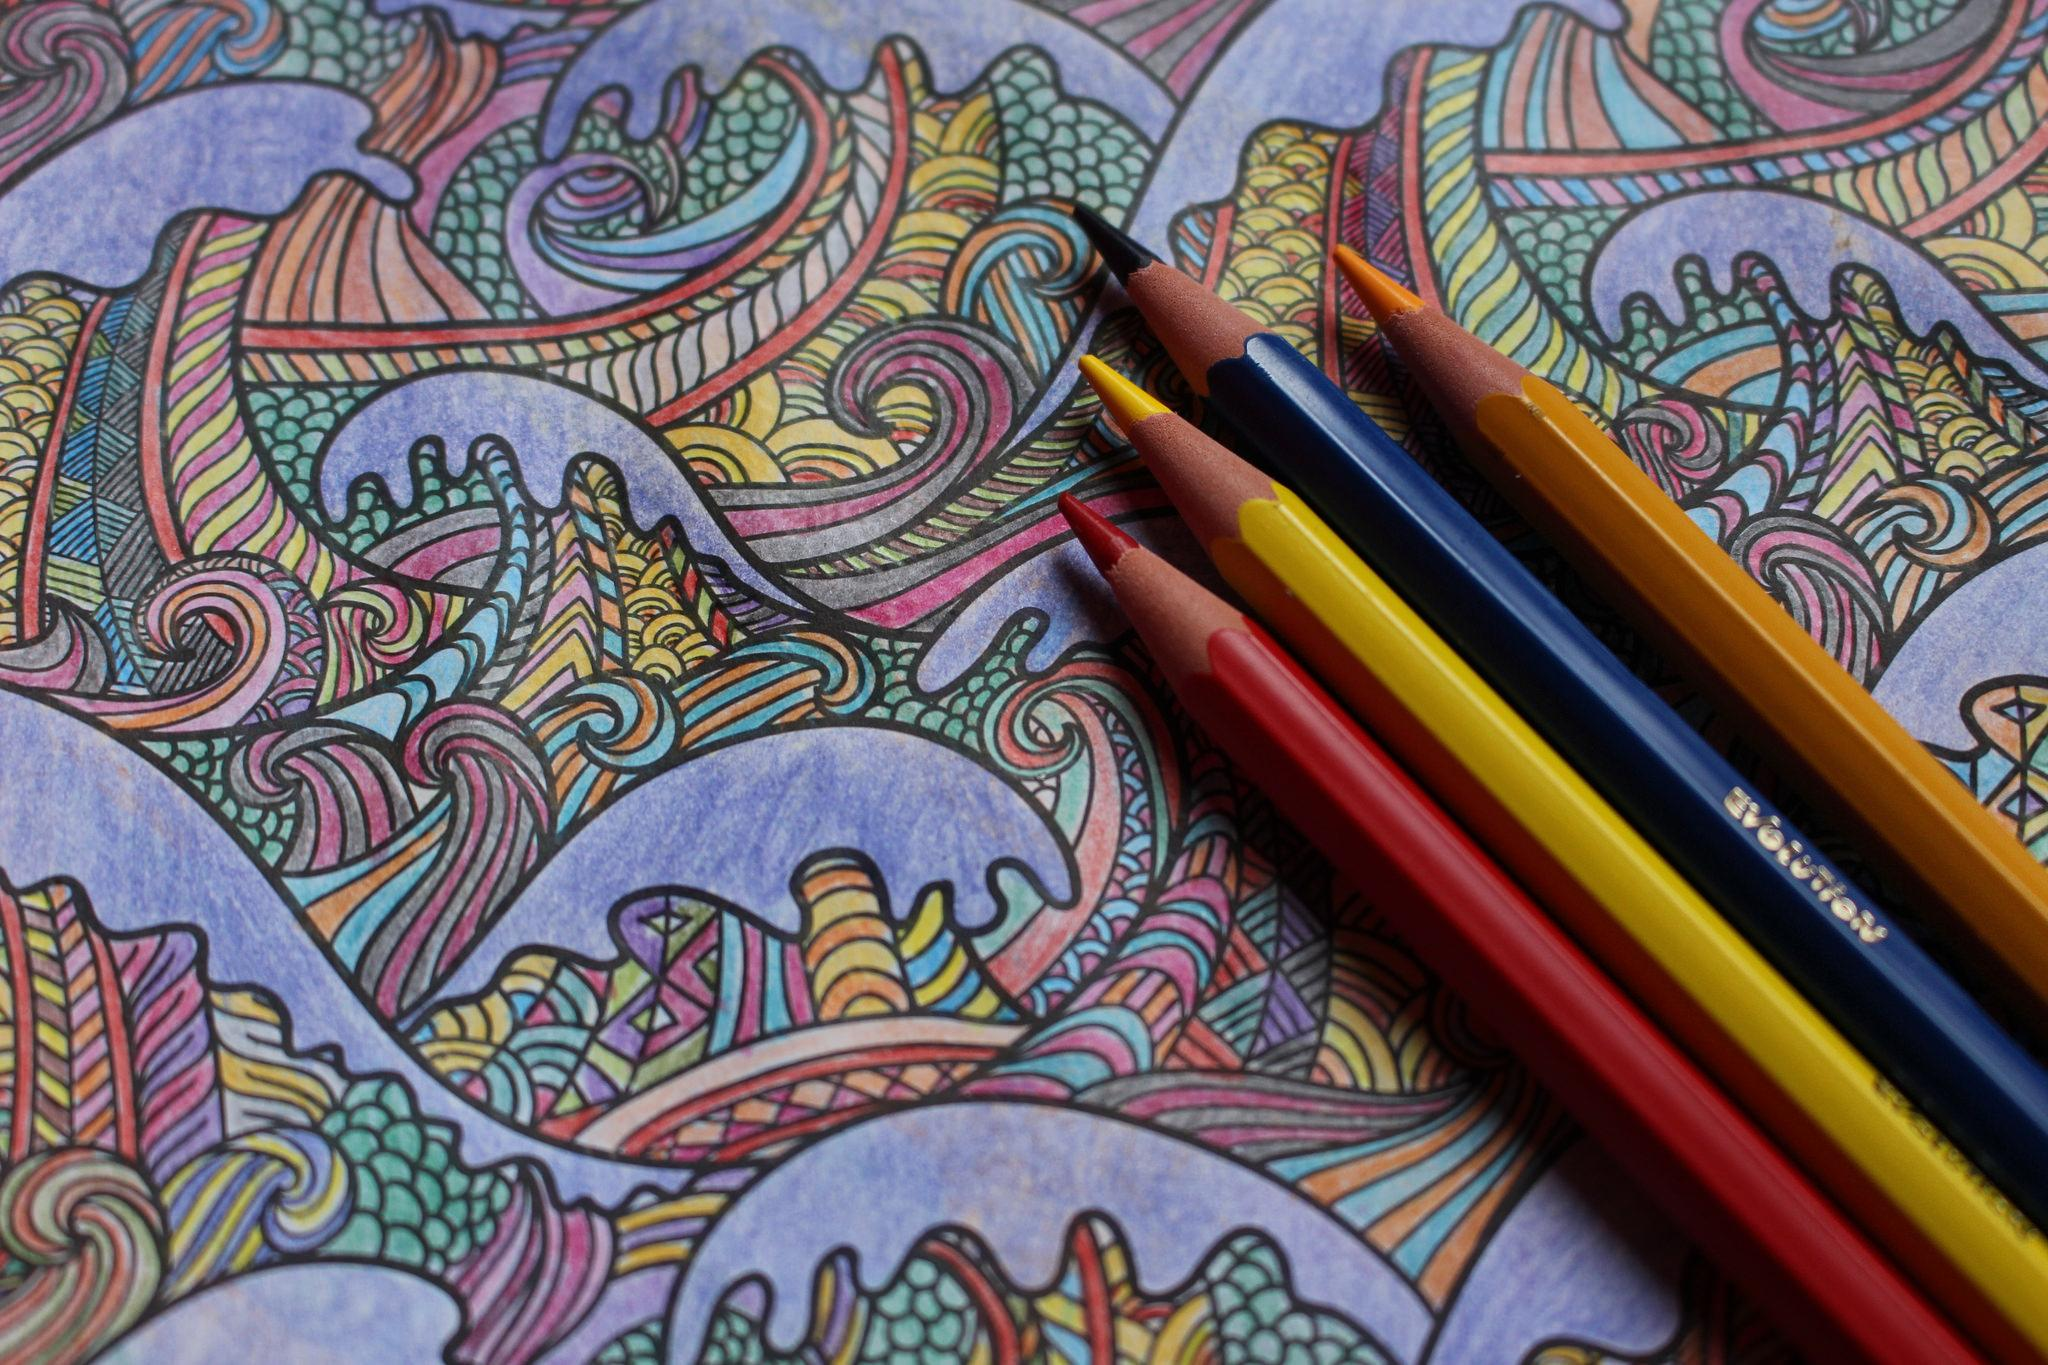 - The Therapeutic Science Of Adult Coloring Books: How This